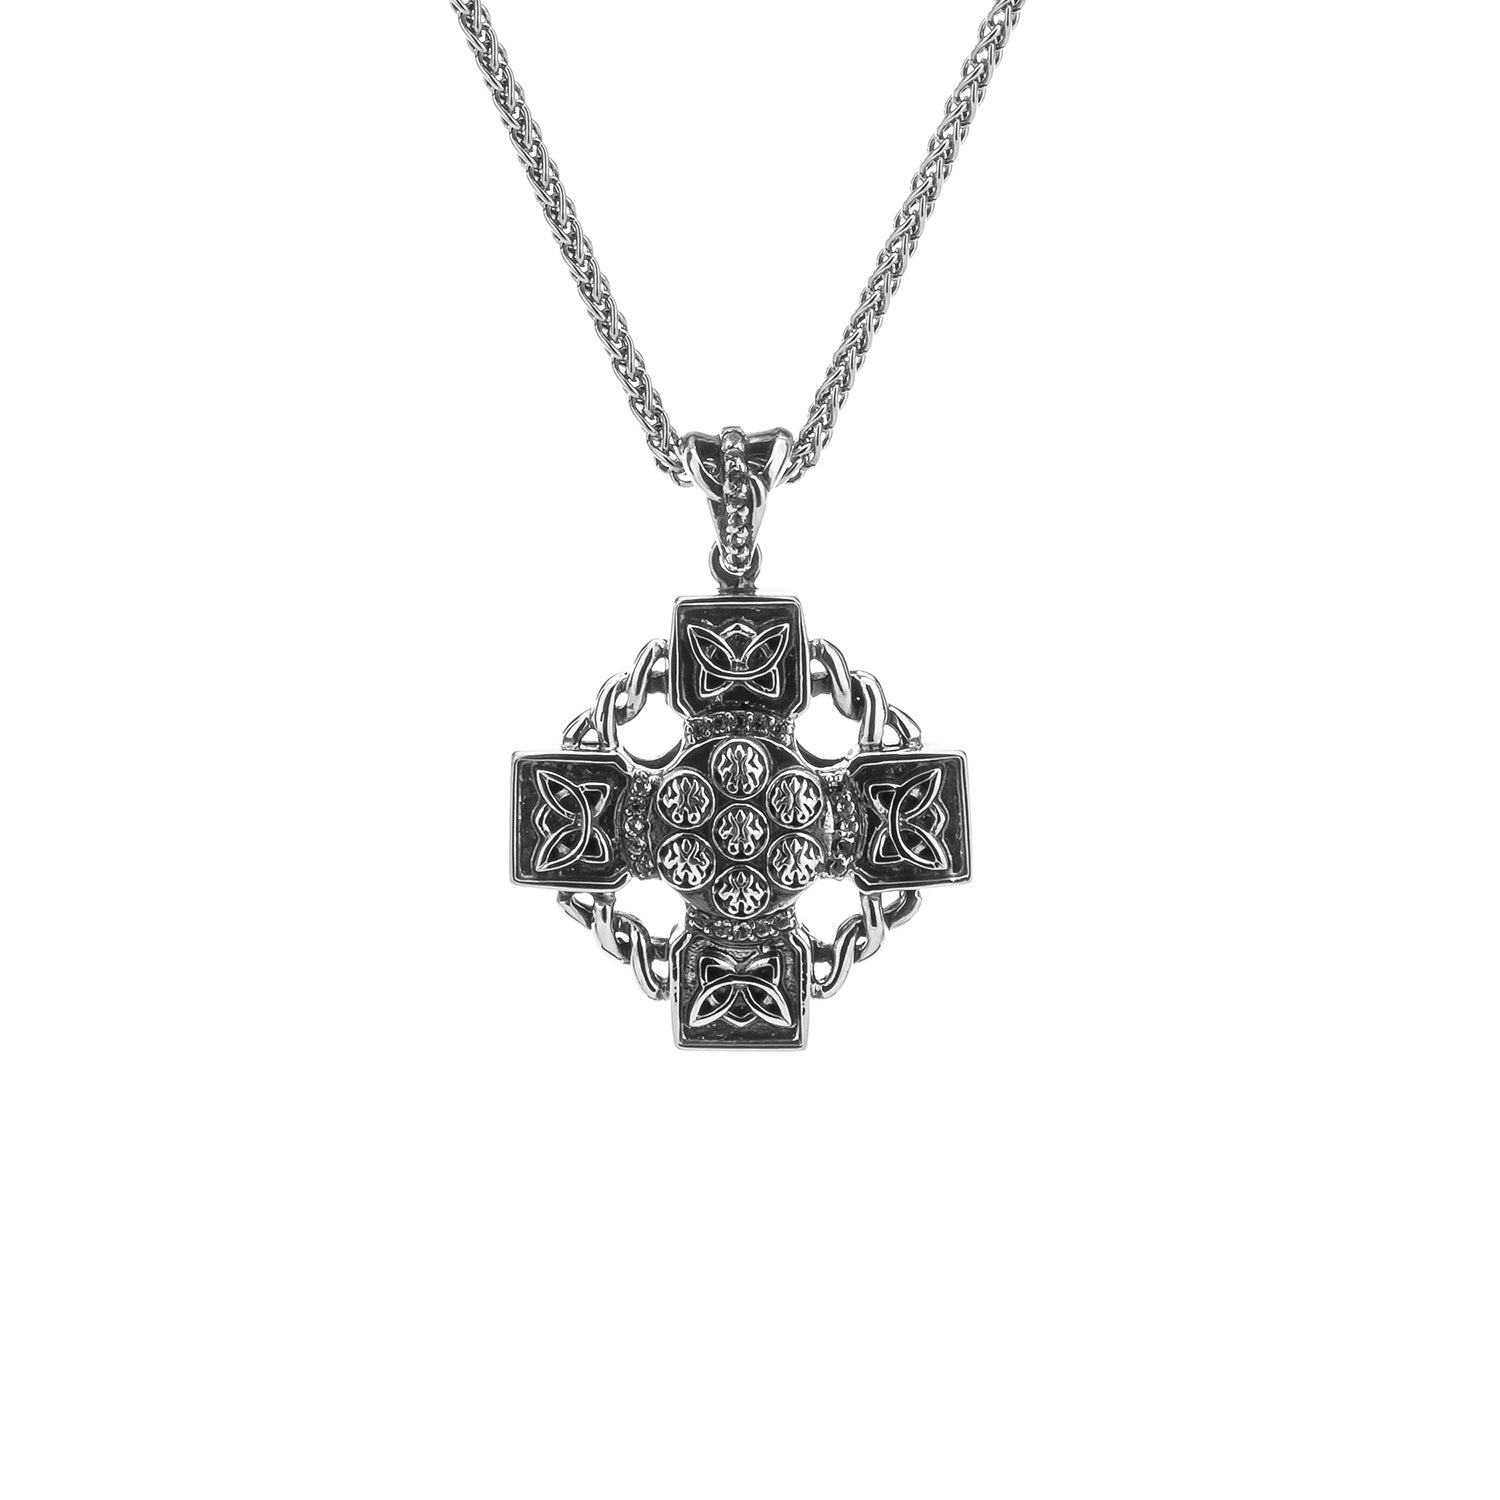 Pendant Oxidized White Topaz Celtic Wheel Cross Pendant from welch and company jewelers near syracuse ny